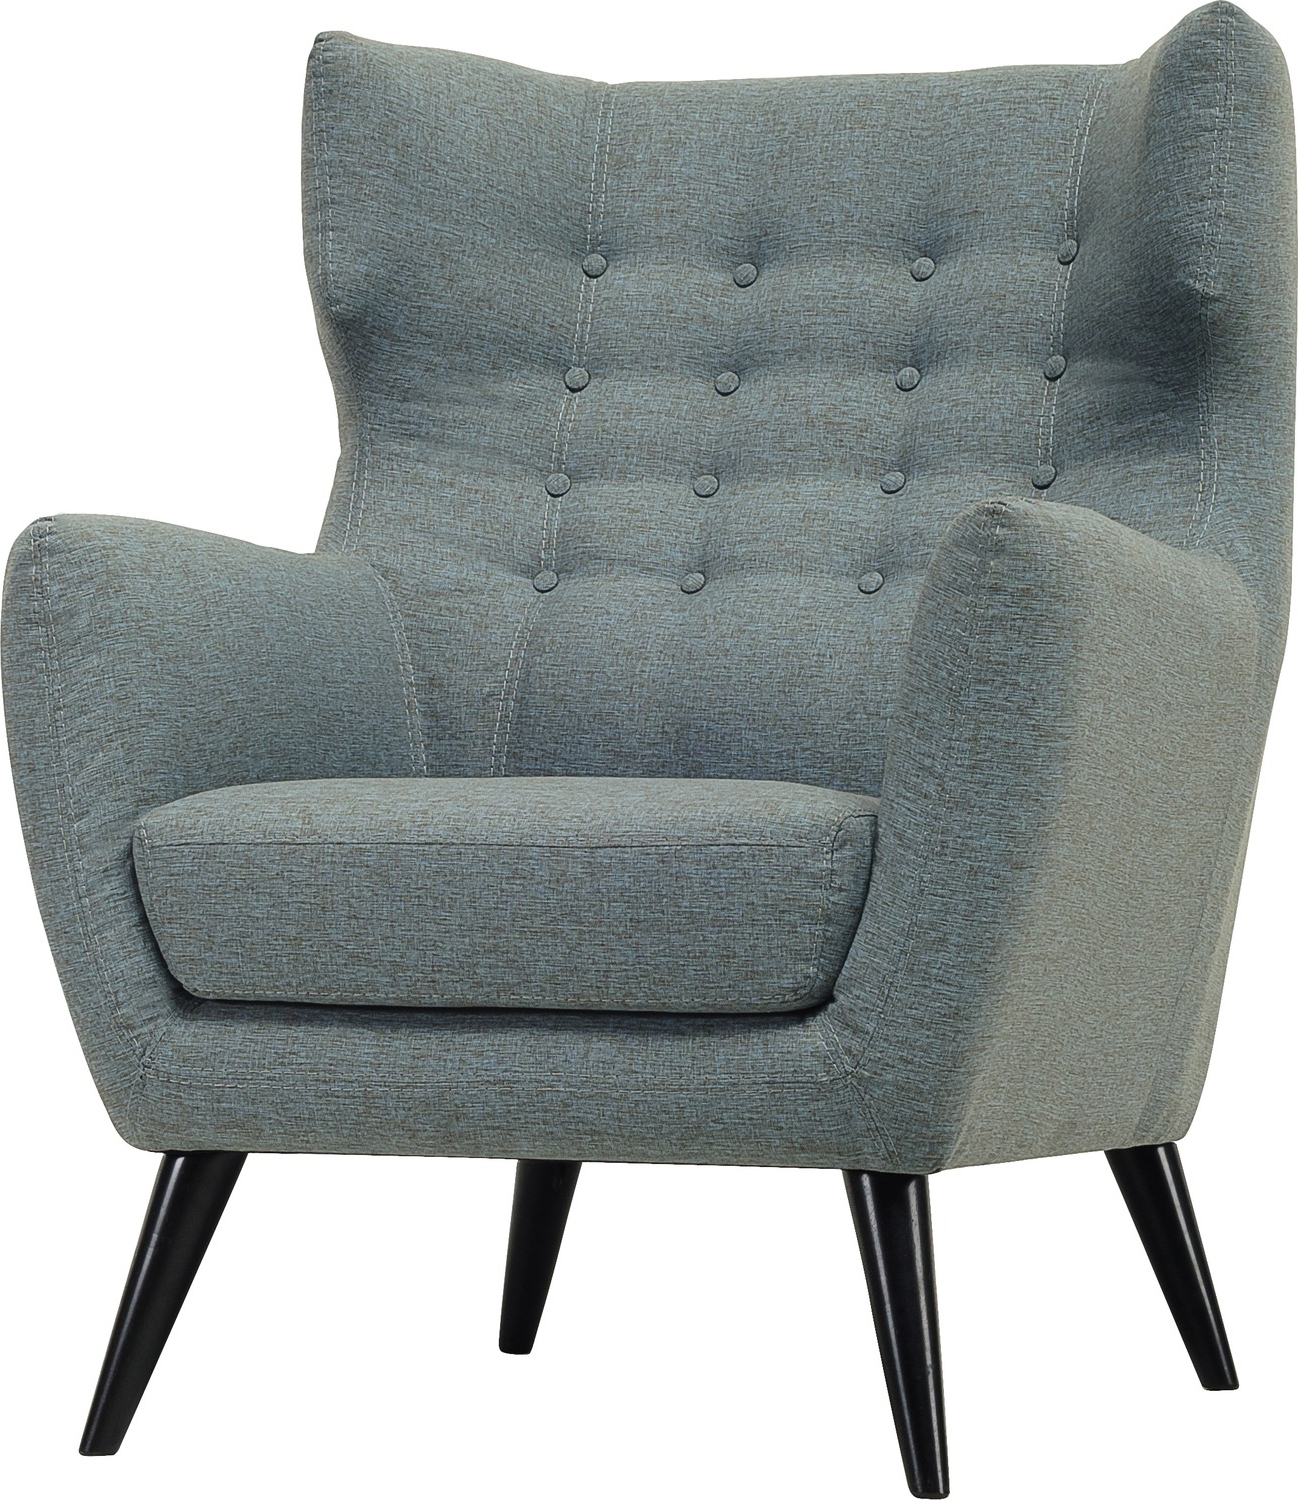 Gallery Of Single Seat Sofa Chairs